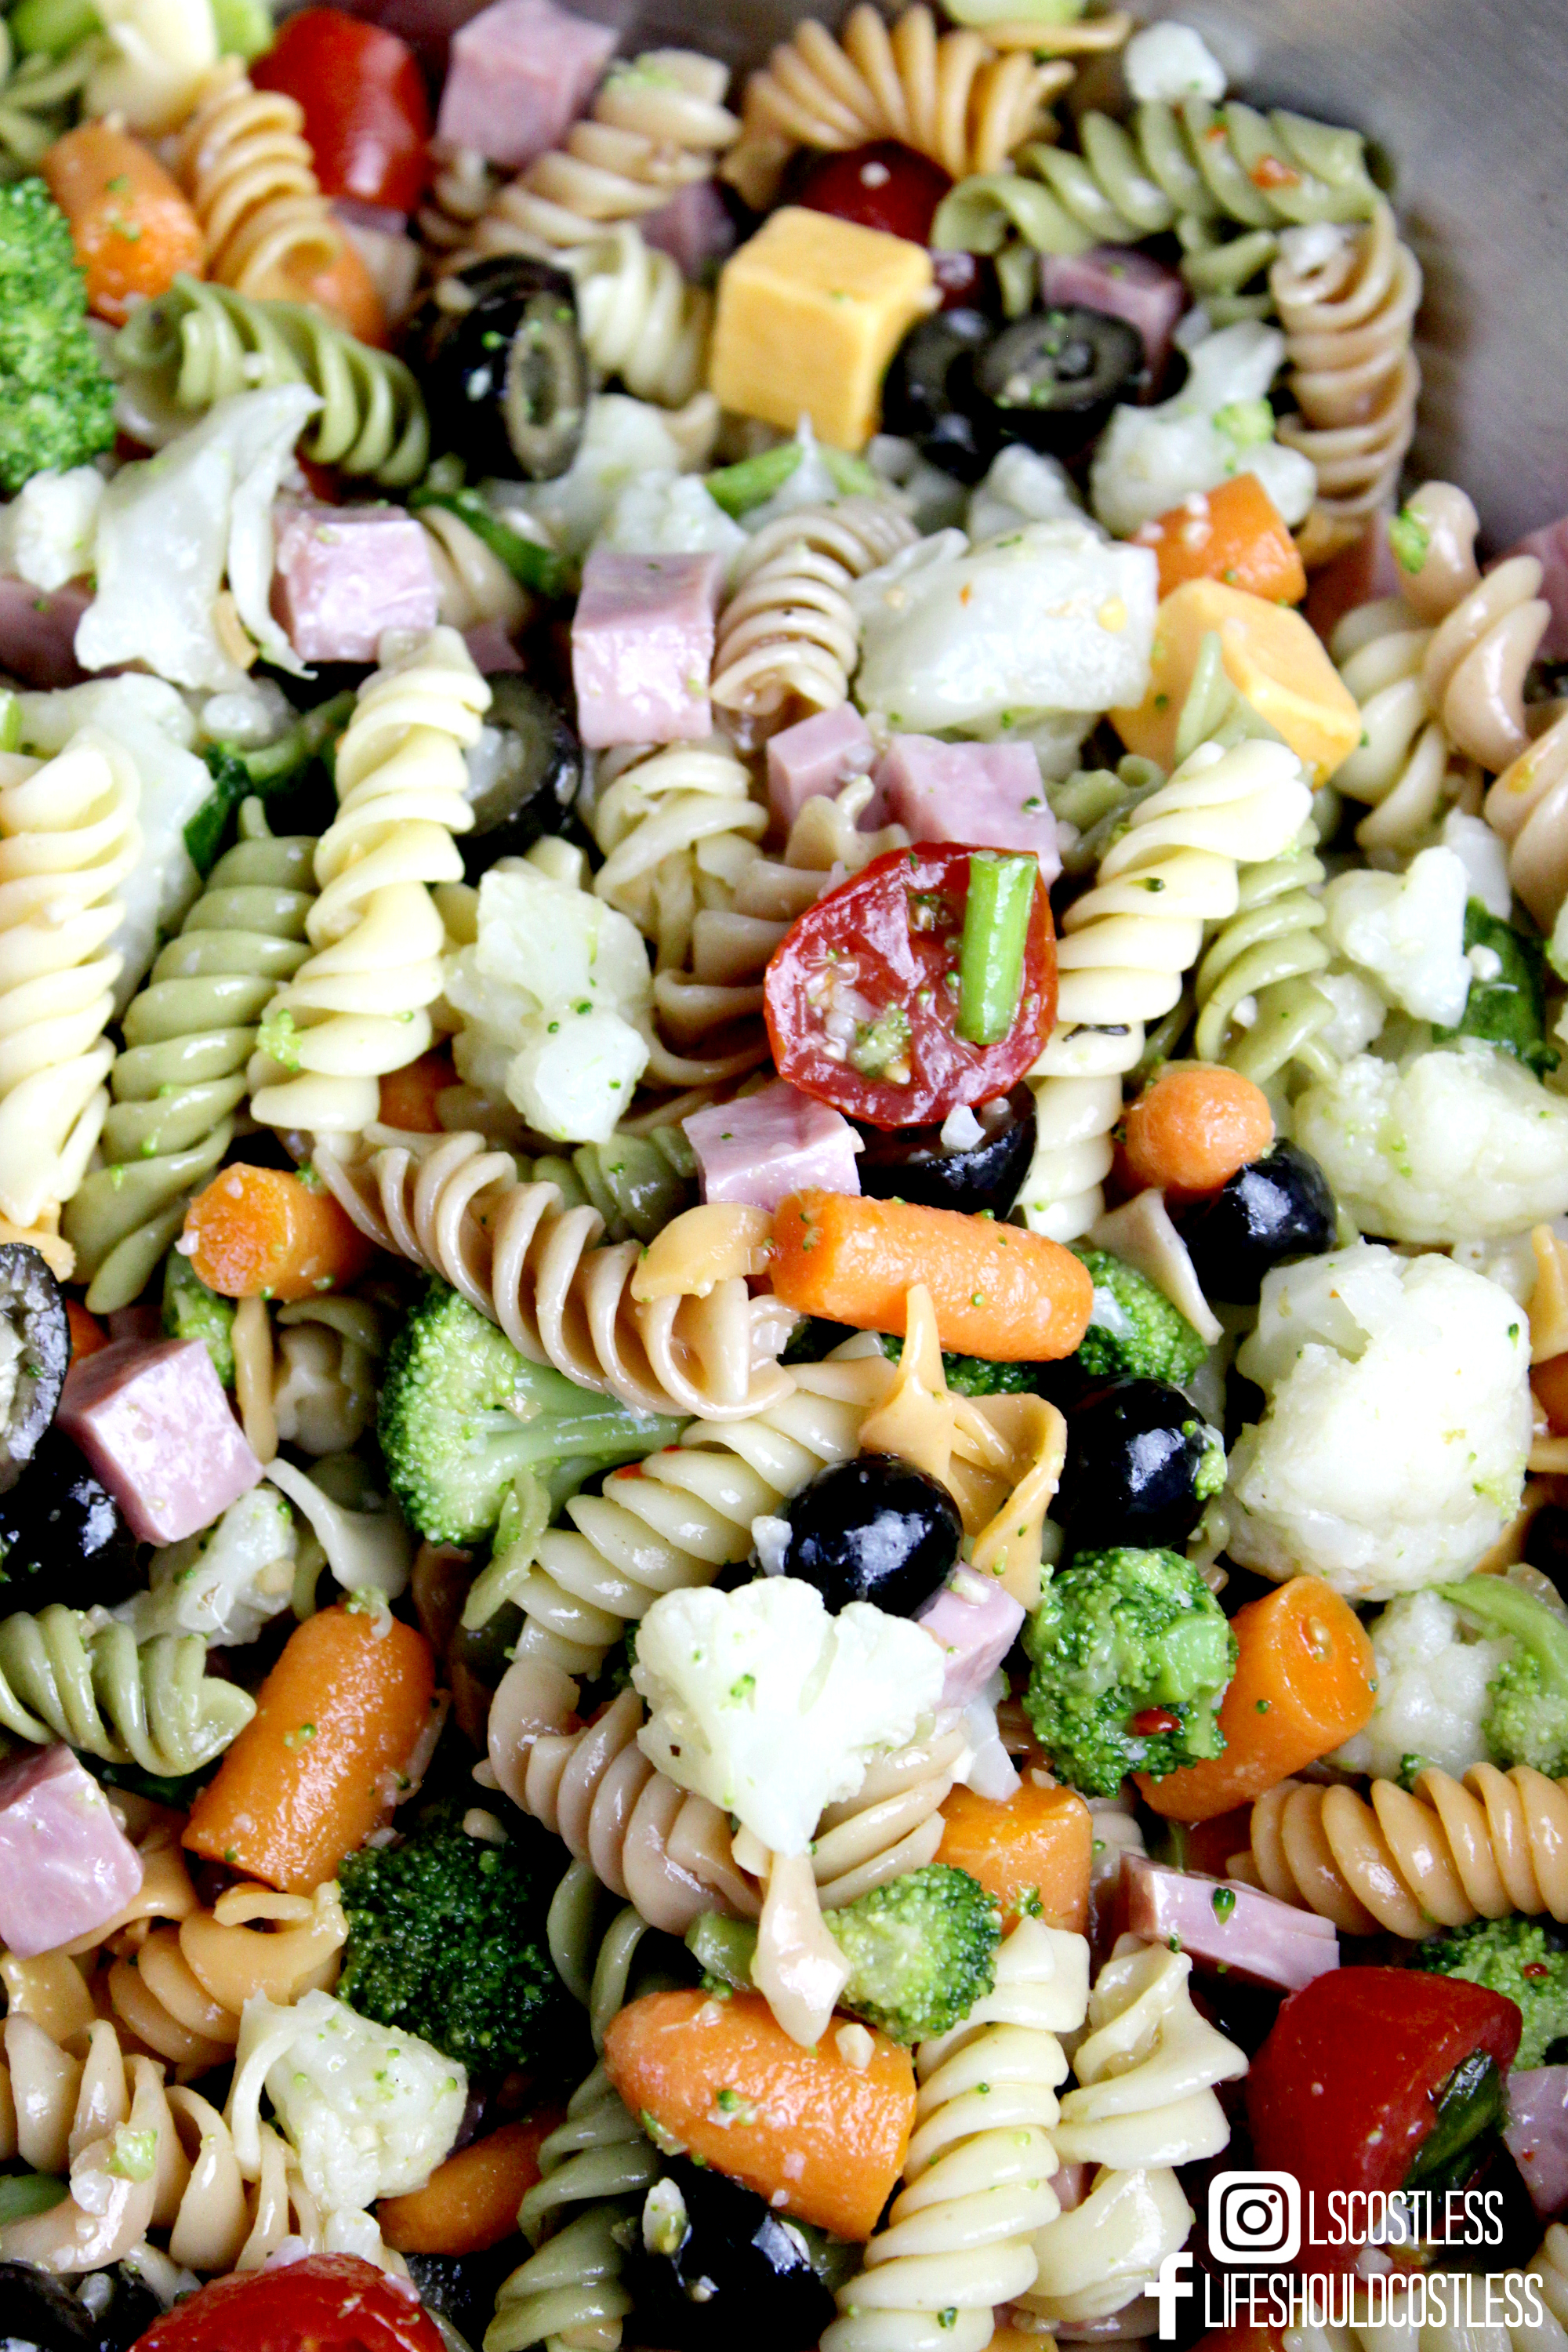 Kick-Ass Pasta Salad Recipe. The best pasta salad perfect for any large gathering. lifeshouldcostless.com